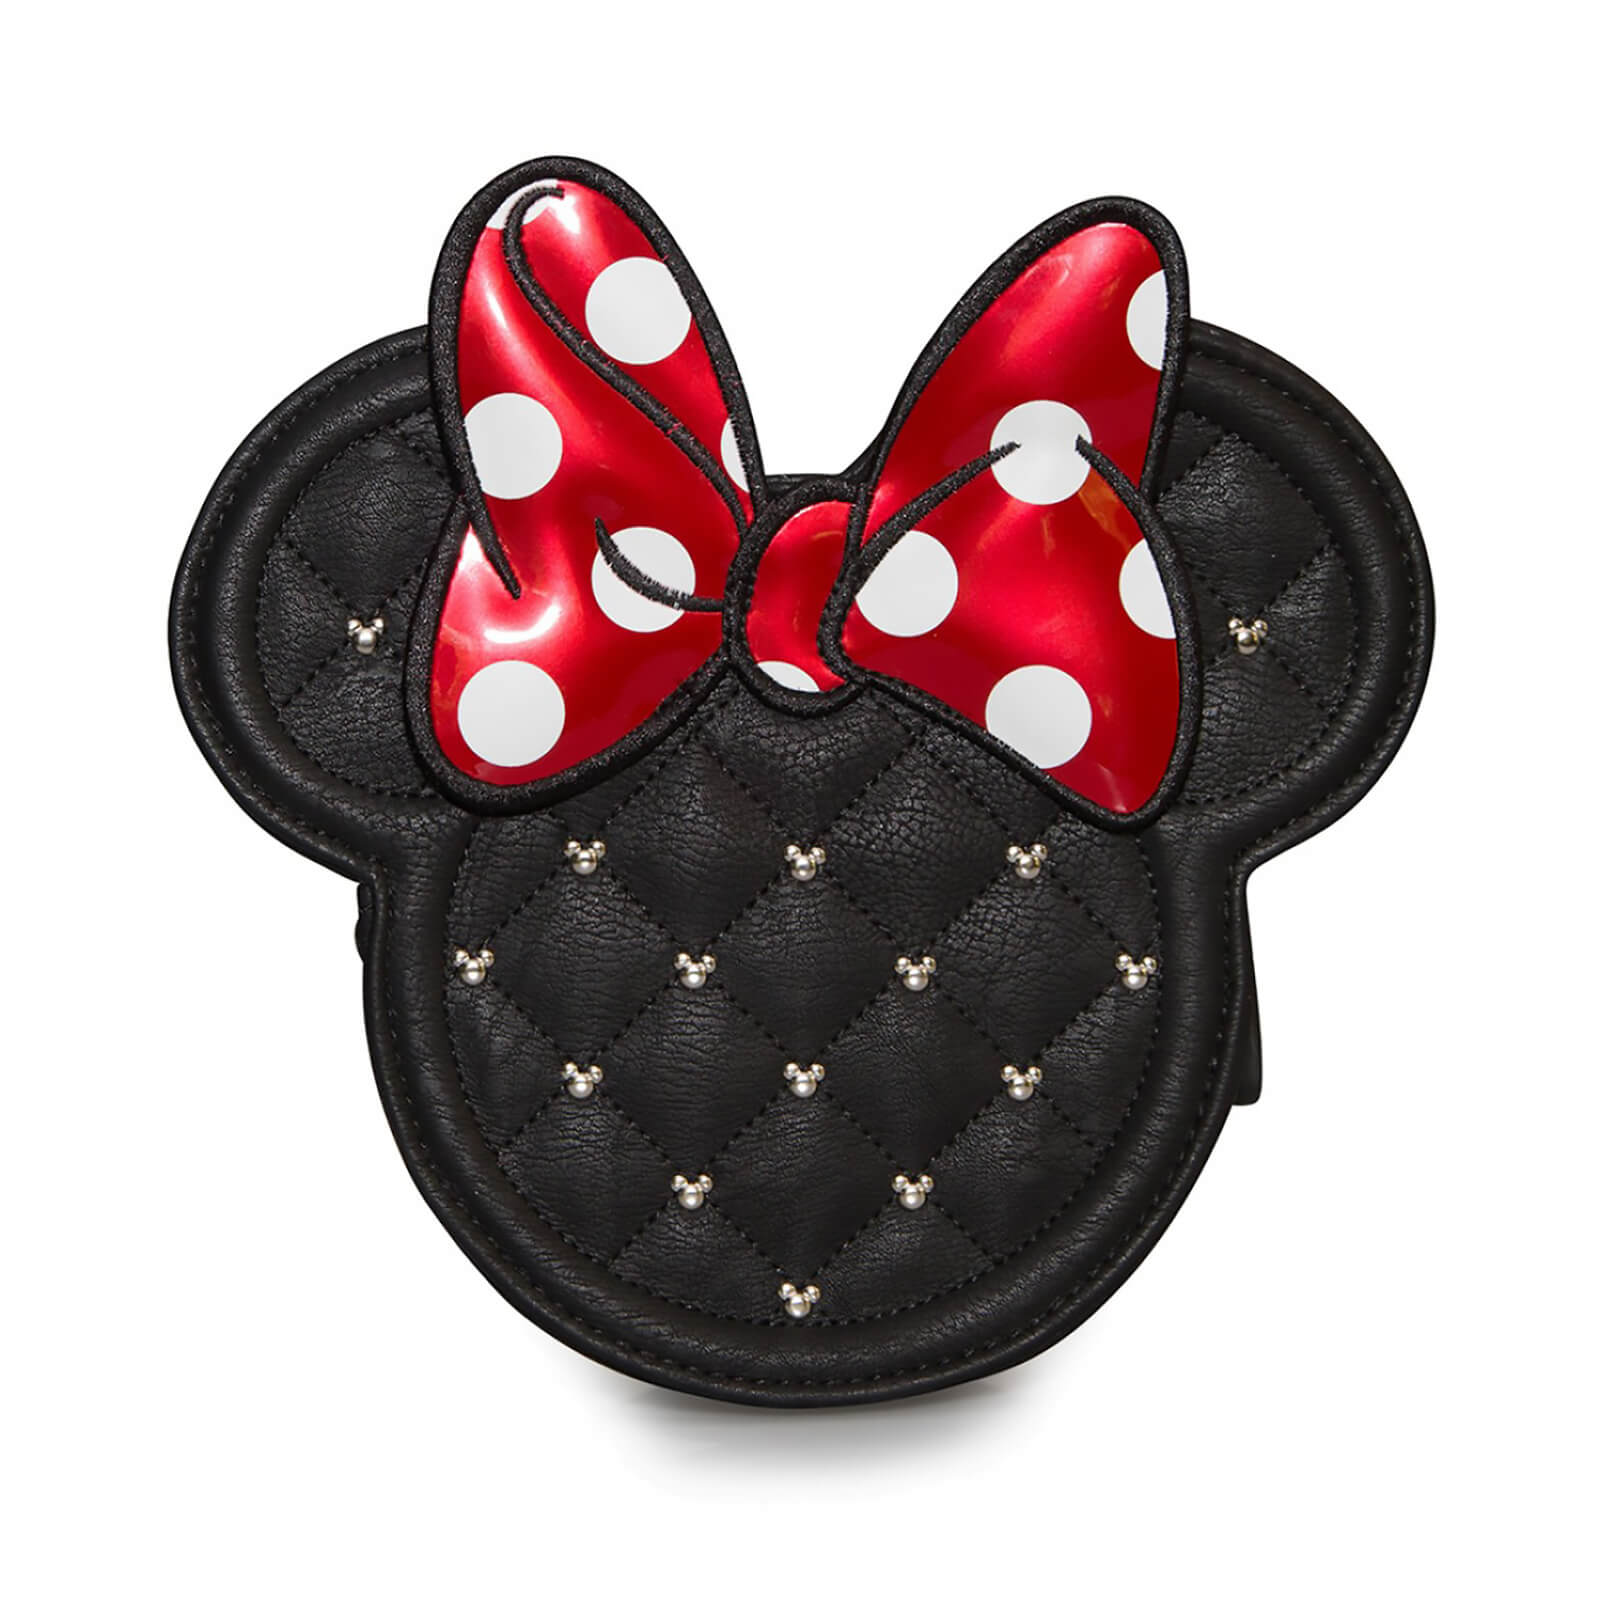 Loungefly Minnie Mouse Die Cut Crossbody